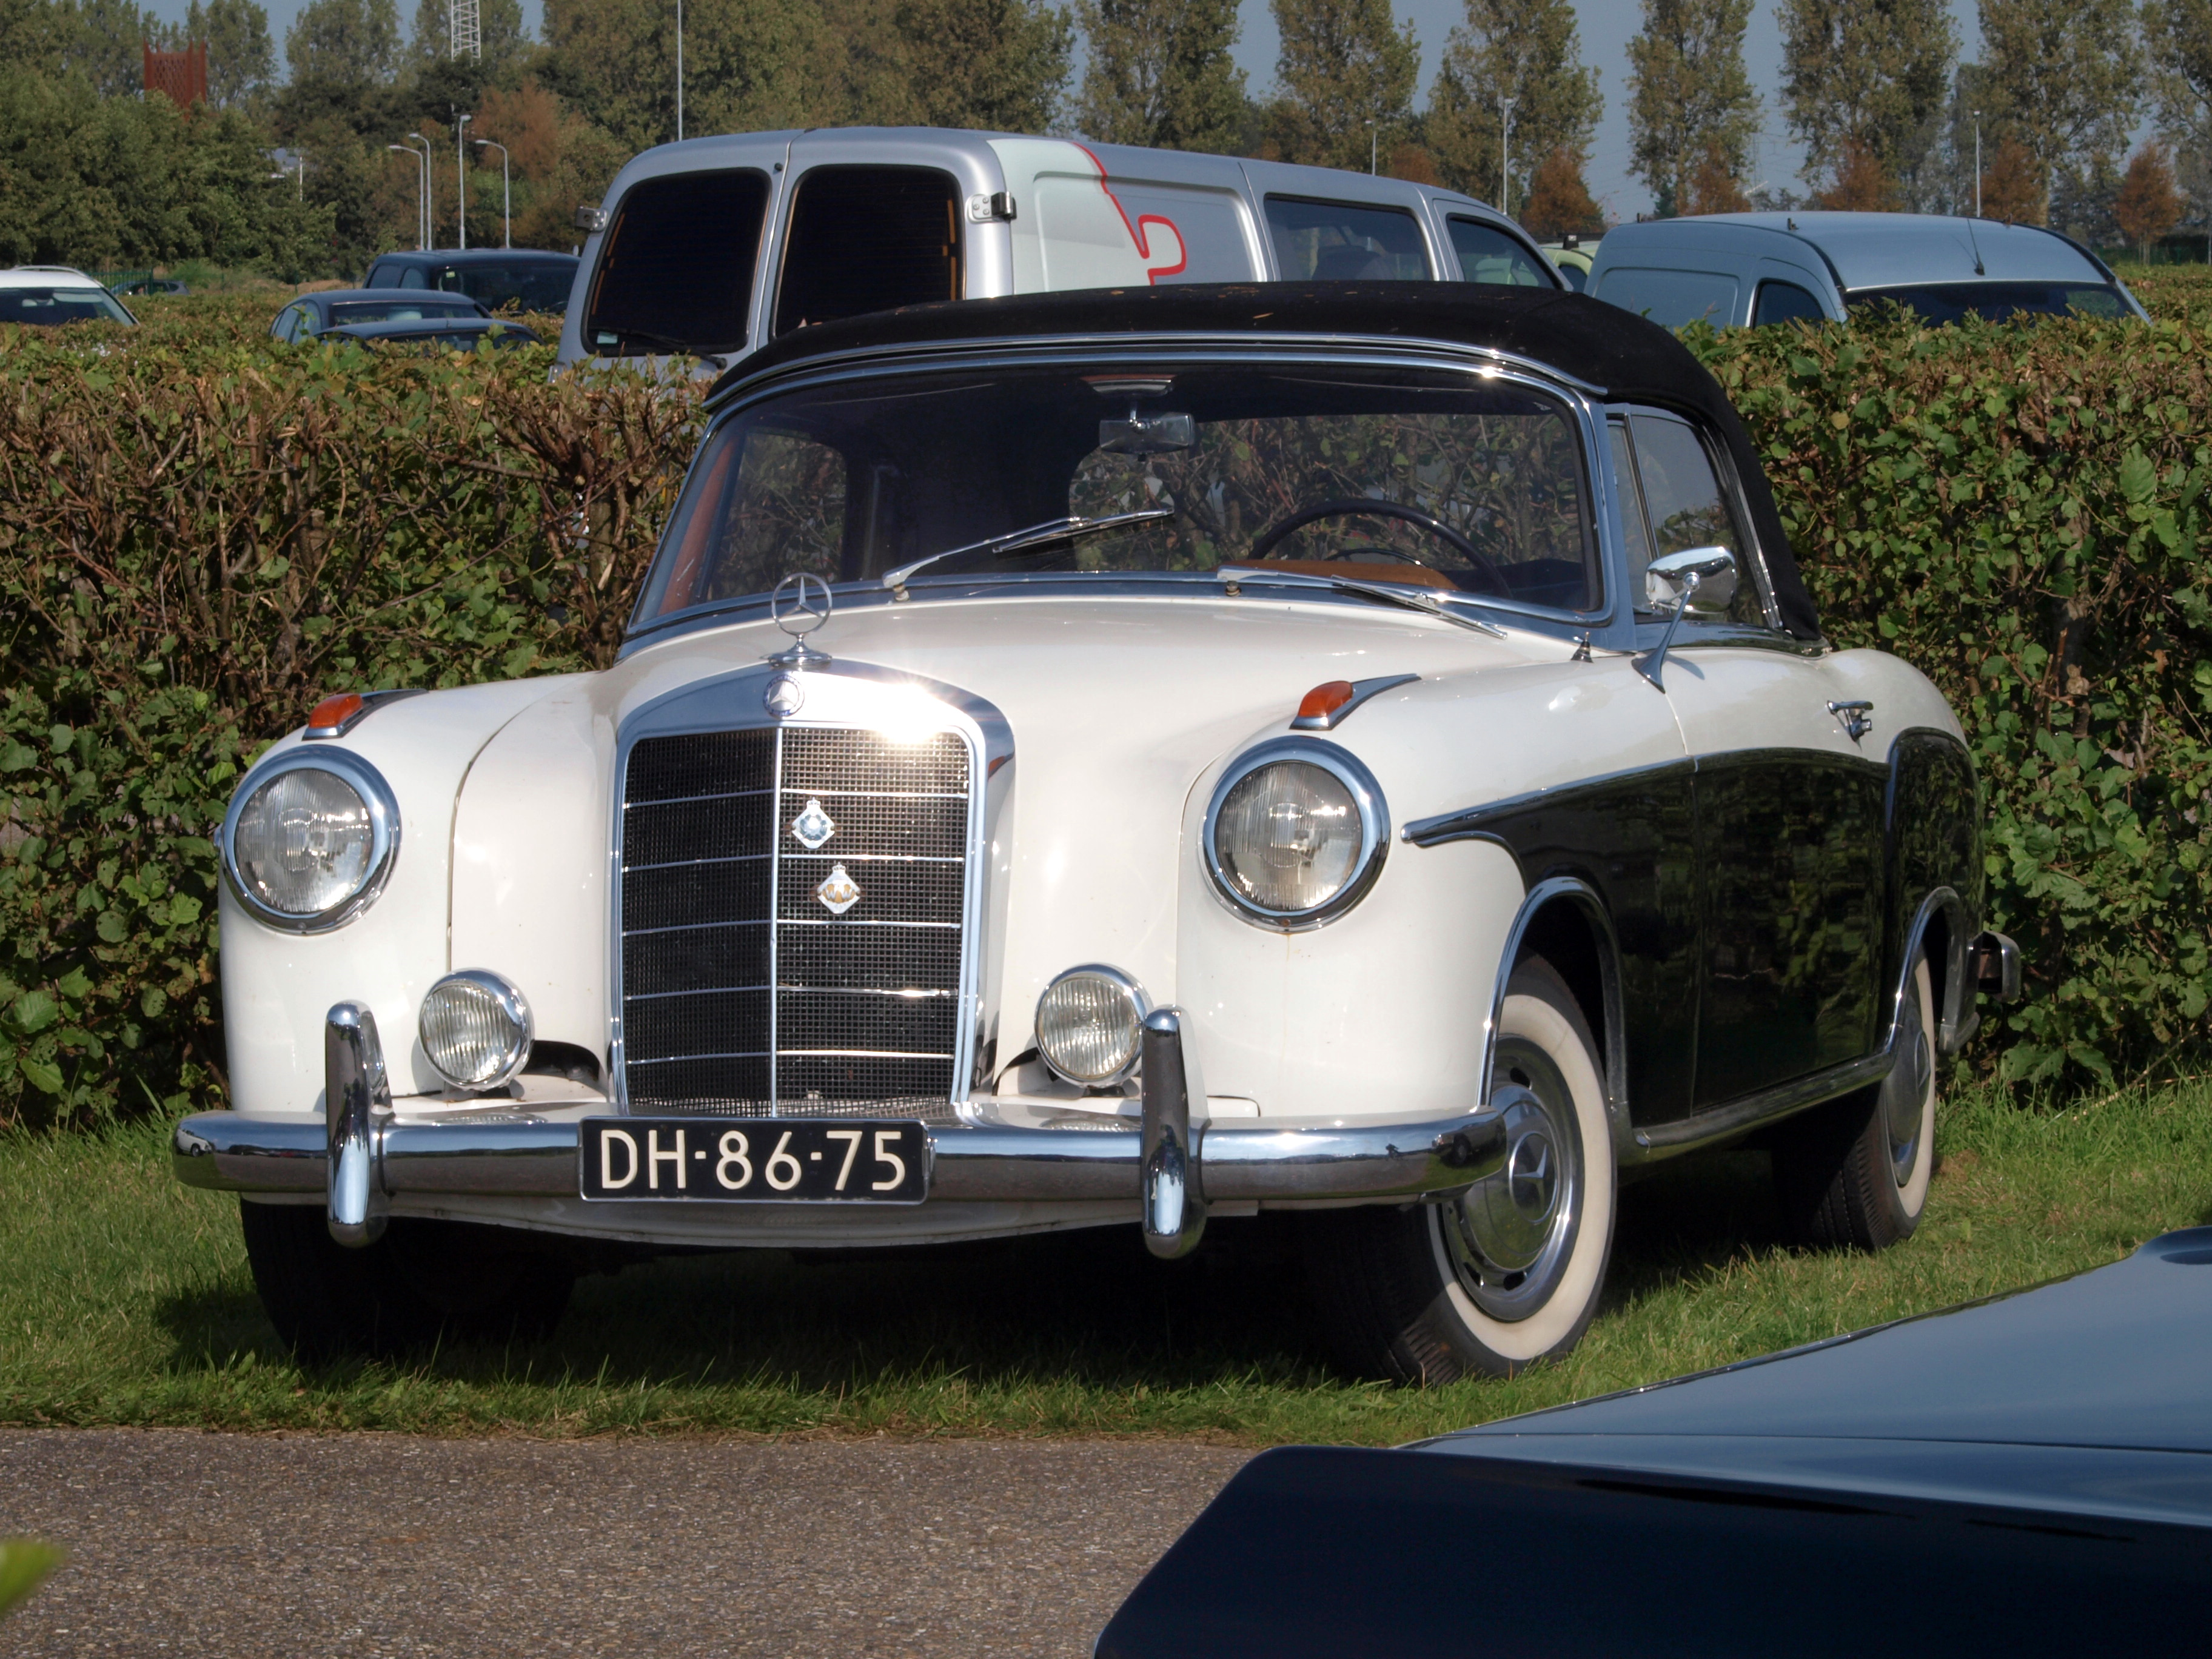 1958 mercedes benz 220se information and photos momentcar for 1958 mercedes benz 220s for sale